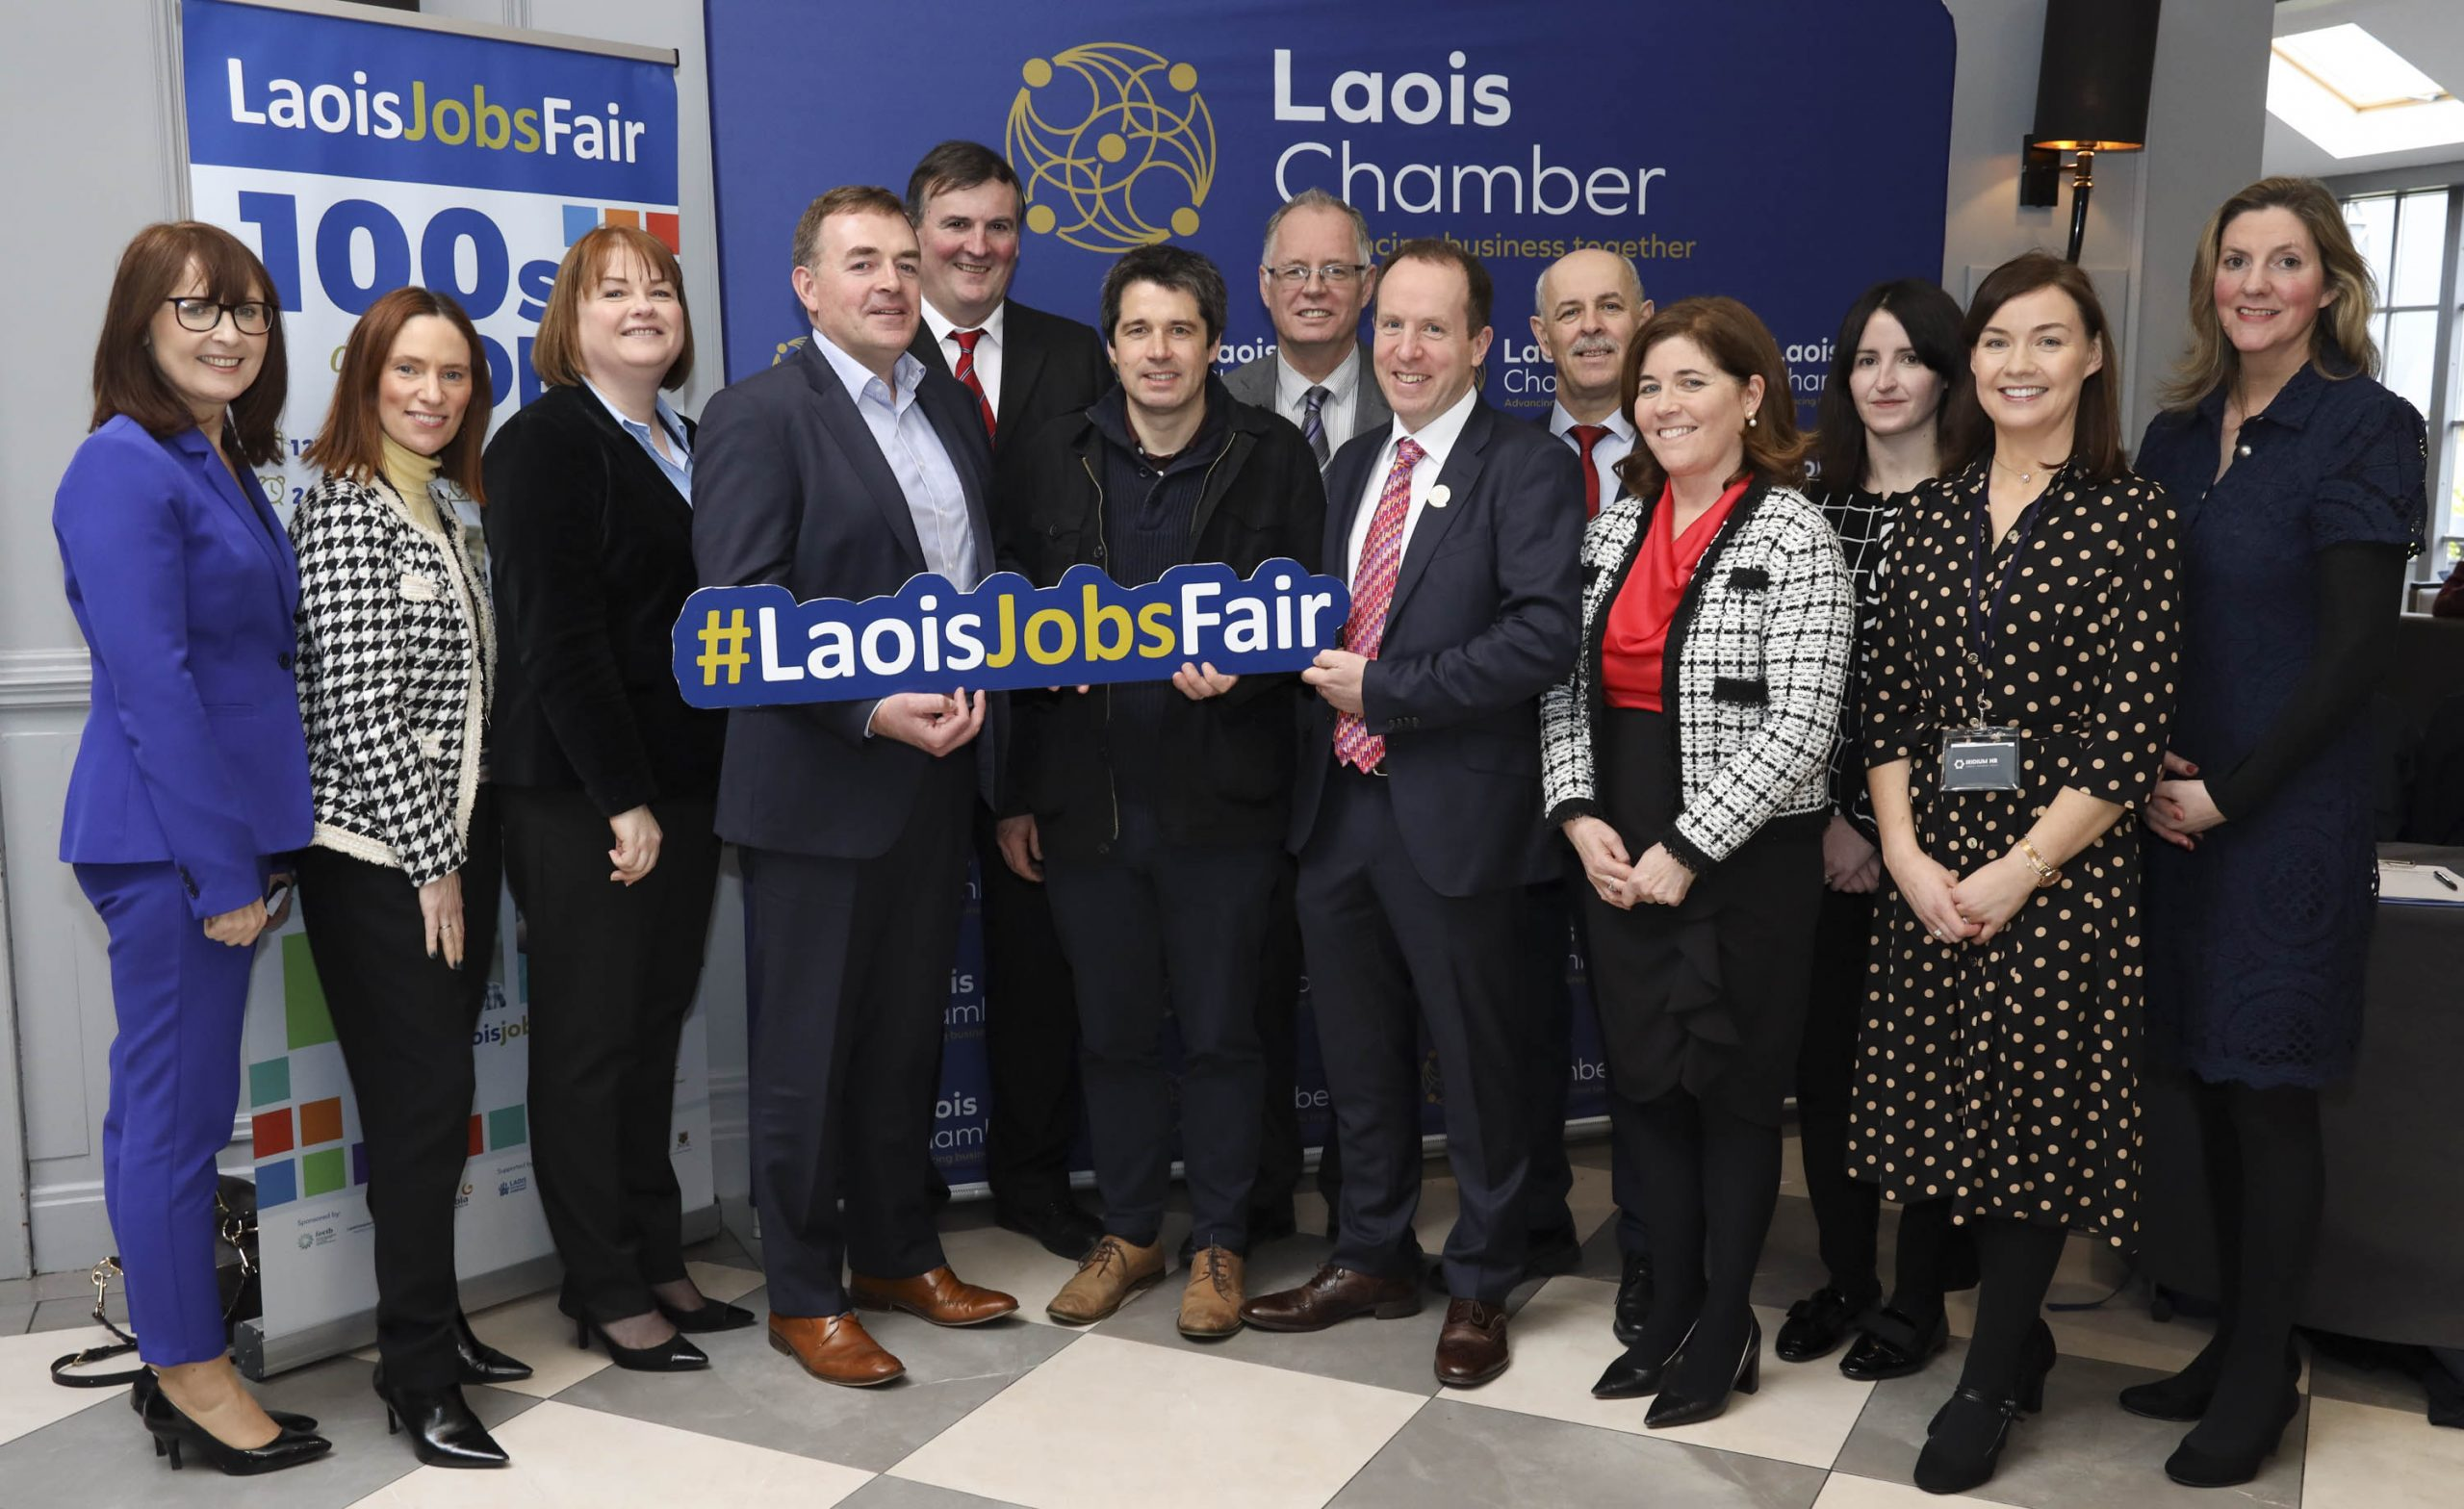 Laois Chamber president Martin Crowley and chief executive Bernie Everard with sponsors at the Laois Jobs Fair organised by the Laois Chamber of Commerce in the Midlands Park Hotel, Portlaoise. From left: Evelyn Reddin, LEO; Naoise Coogan, Nuala OÕRegan and Kevin Egan, Glanbia Cheese; John Mulholland, chief executive Laois County Council; Mark Clancy and Peter OÕNeill, Laois Partnership; Martin Crowley, Laois Chamber; Gerry Murphy, Laois County Council; Bernie Everard, Laois Chamber; Amie Colgan, Nuvo Recruitment; Sinead Grehan, Iridium HR and Sandra Doyle, LOETB. Photo: Alf Harvey, no reproduction fee.